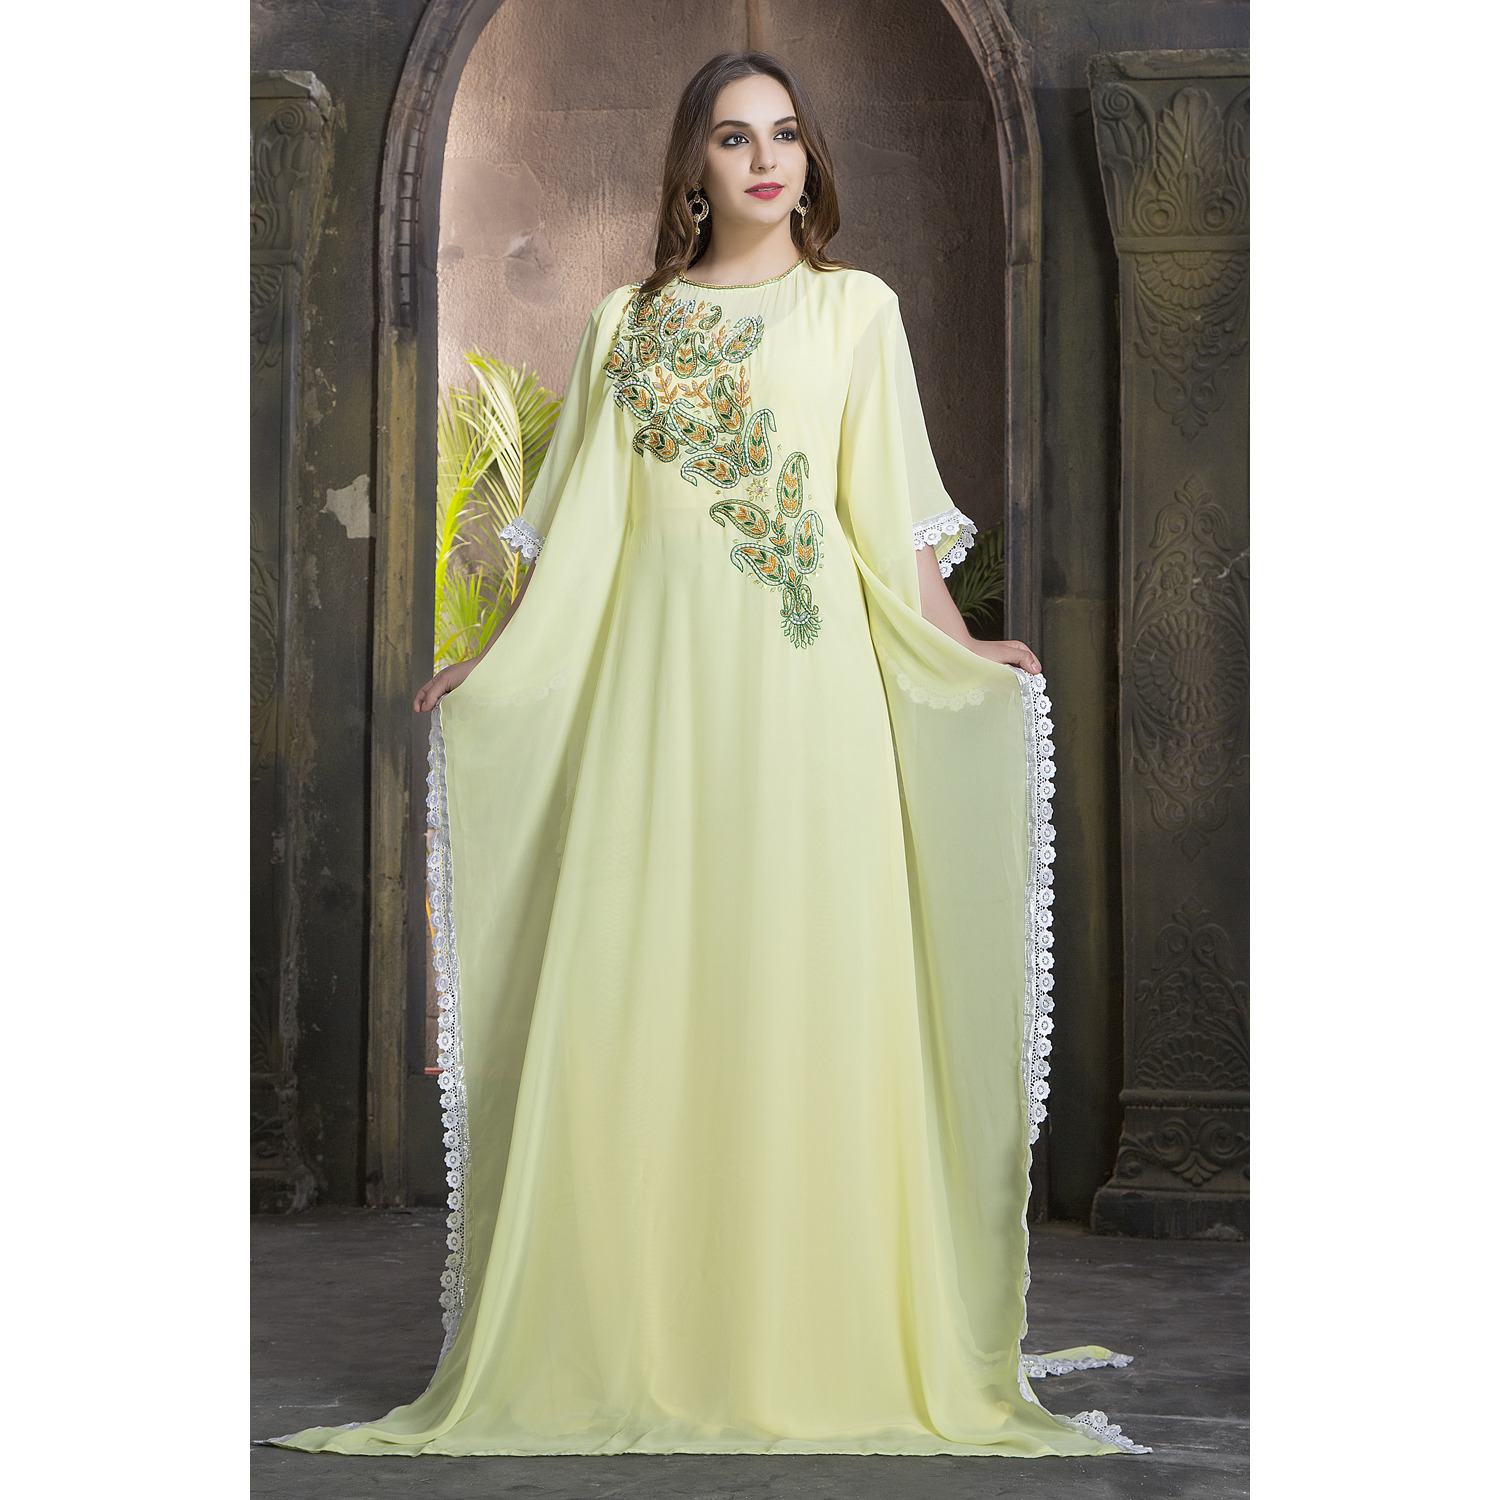 Women's Fashion Trendy Hand beaded dress Dress crafted  Kaftan Ethnic wear Chic Lemon Yellow